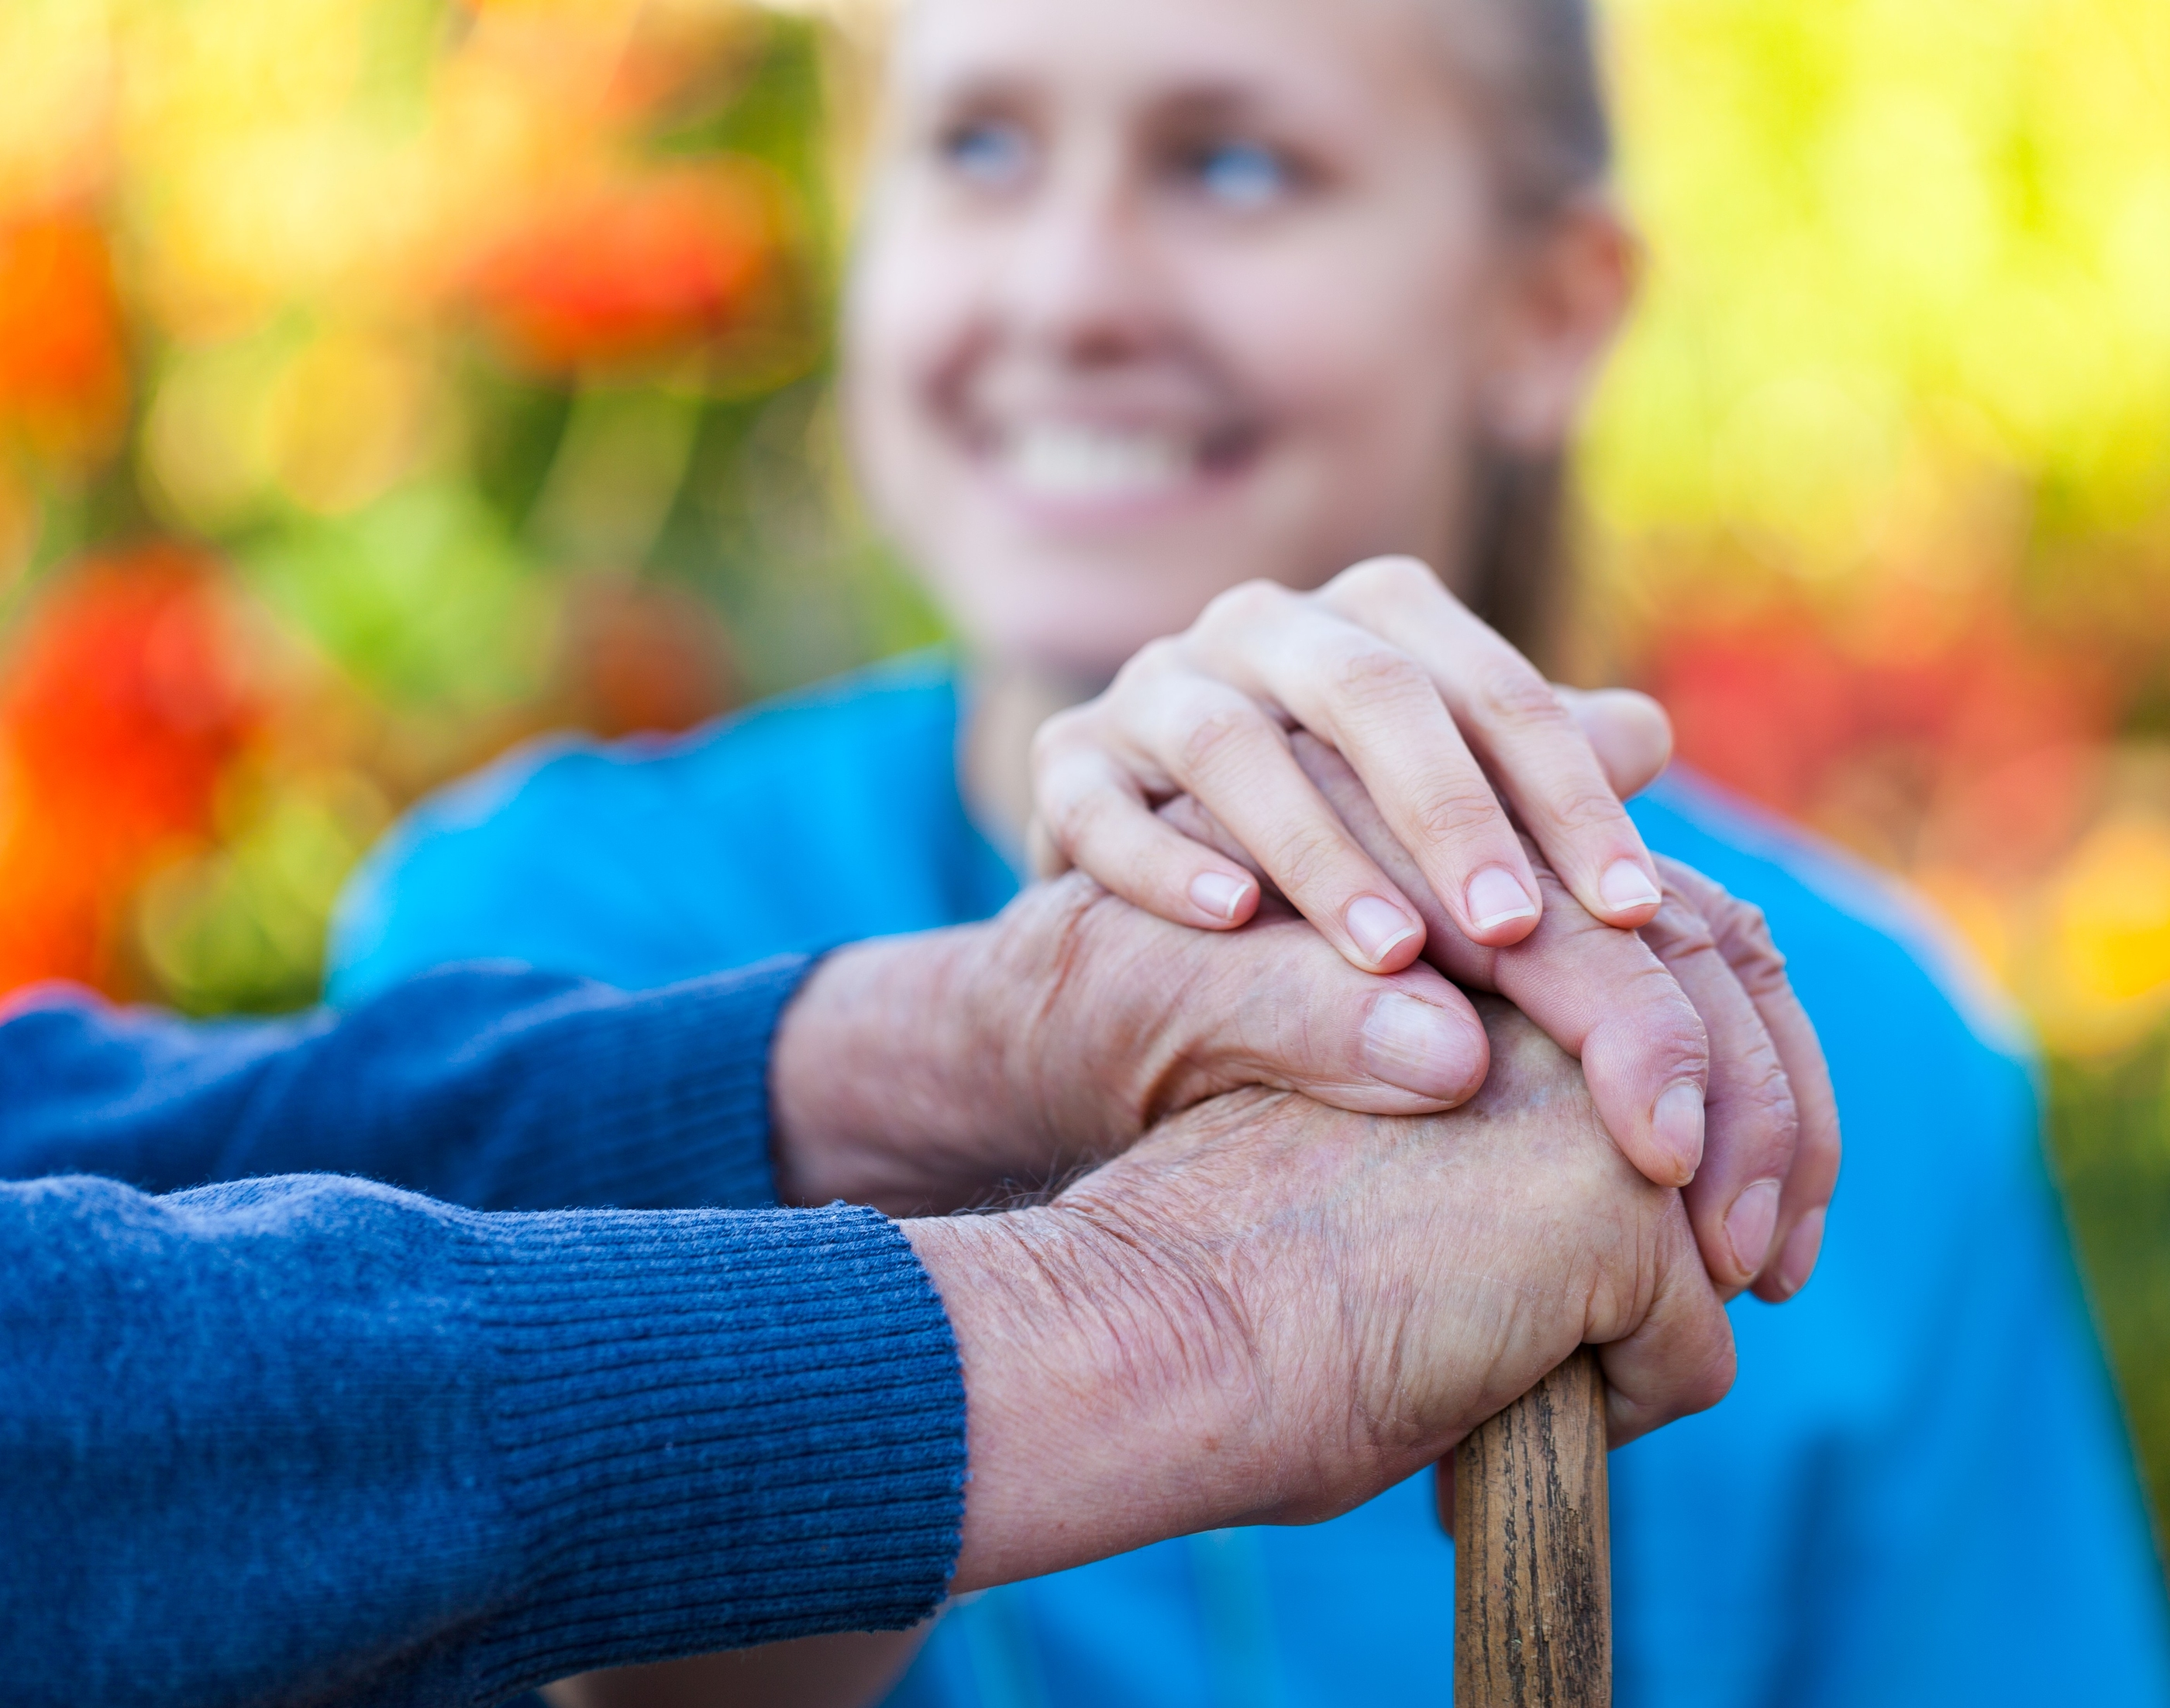 Elderly Care in Los Gatos CA: Watching for Safety Issues